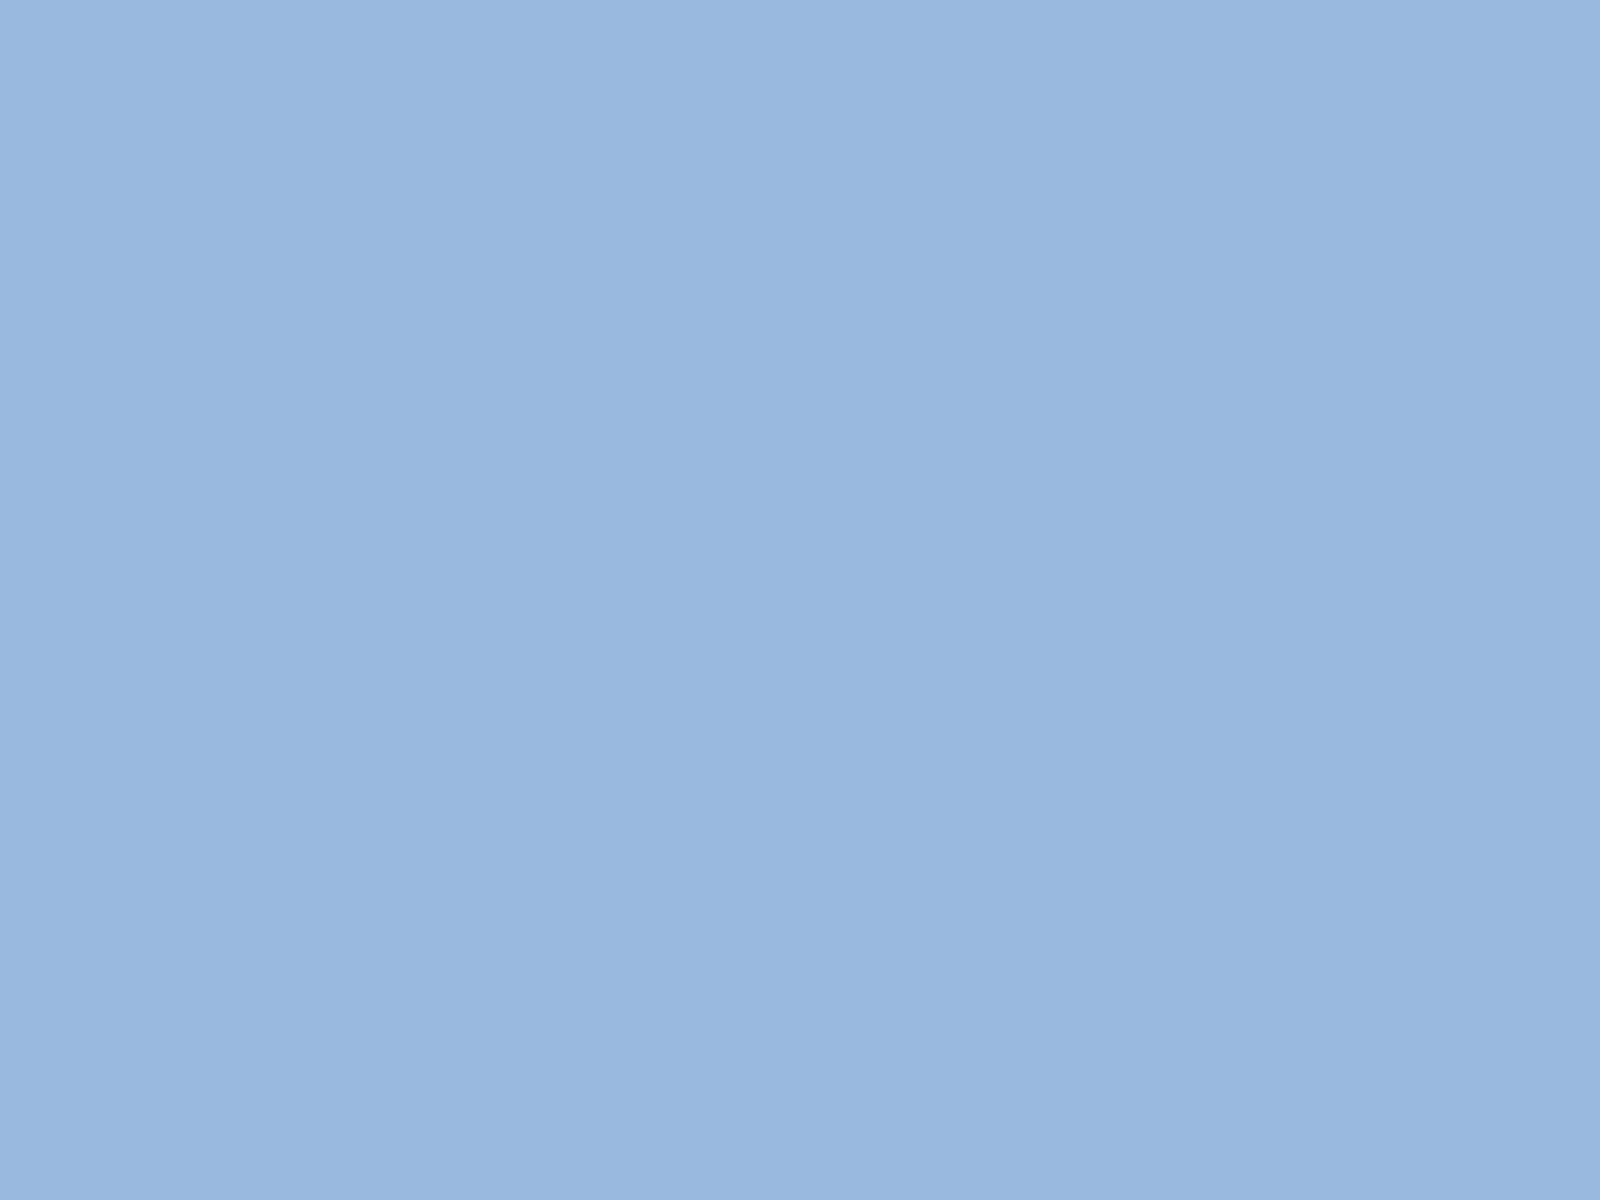 1600x1200 Carolina Blue Solid Color Background